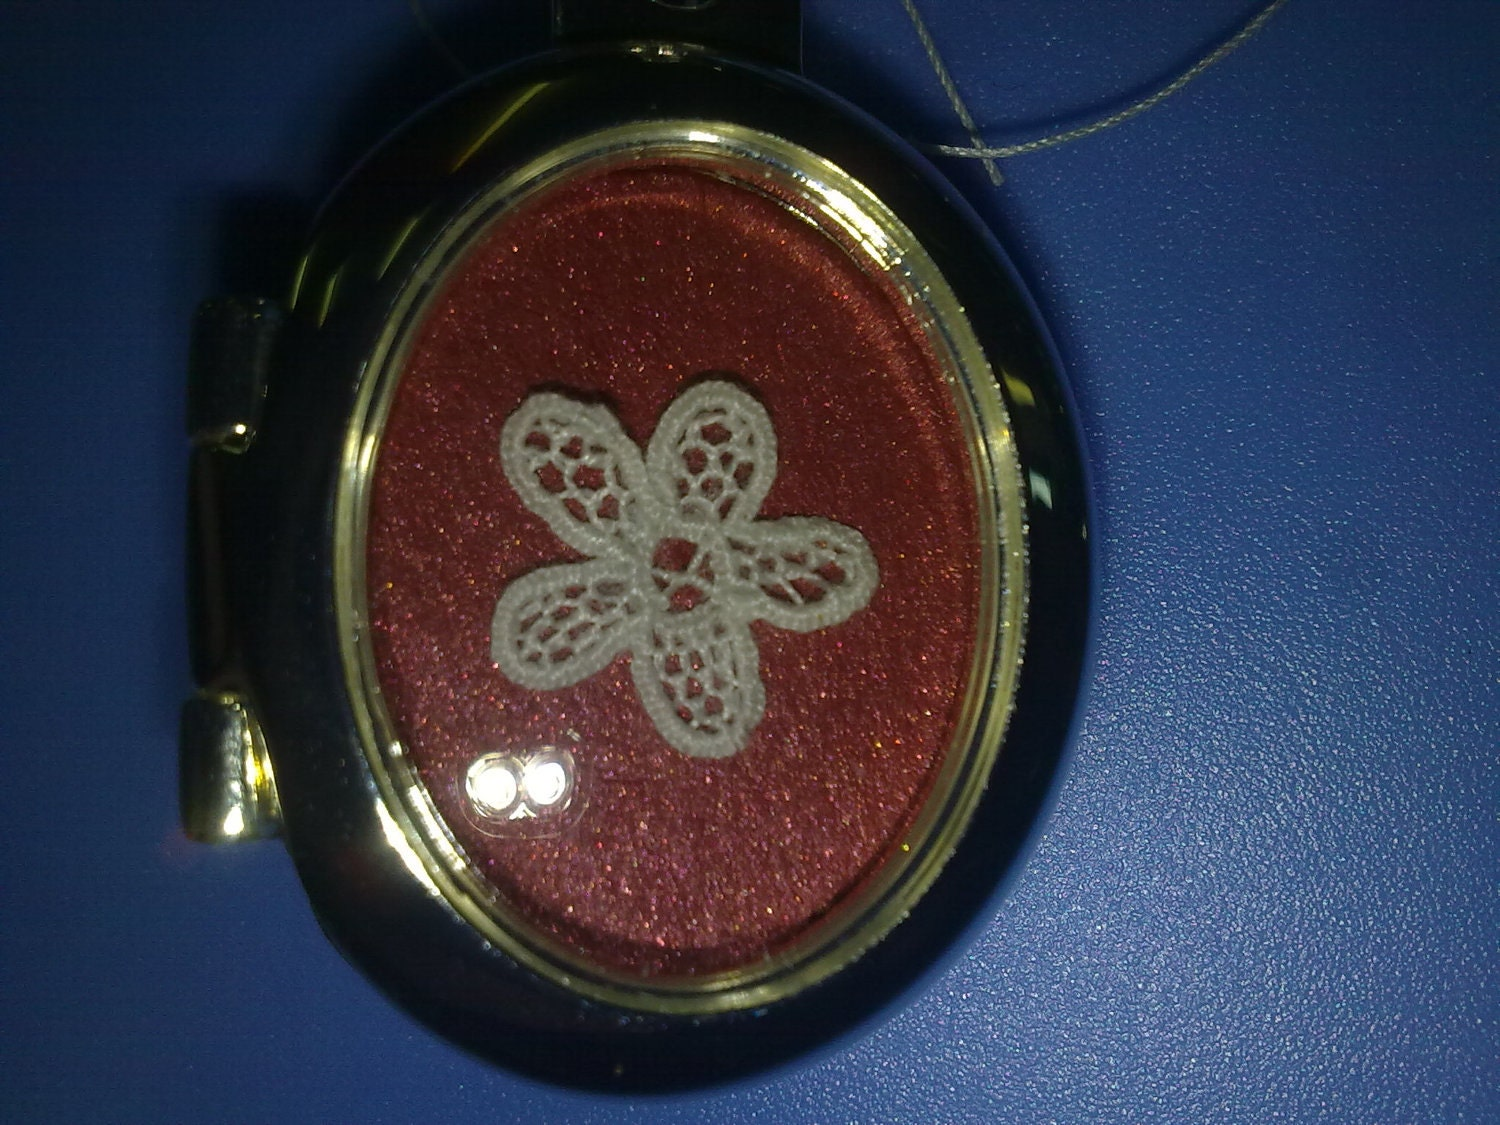 Handmade Kenmare Lace inset in a silver Keyring